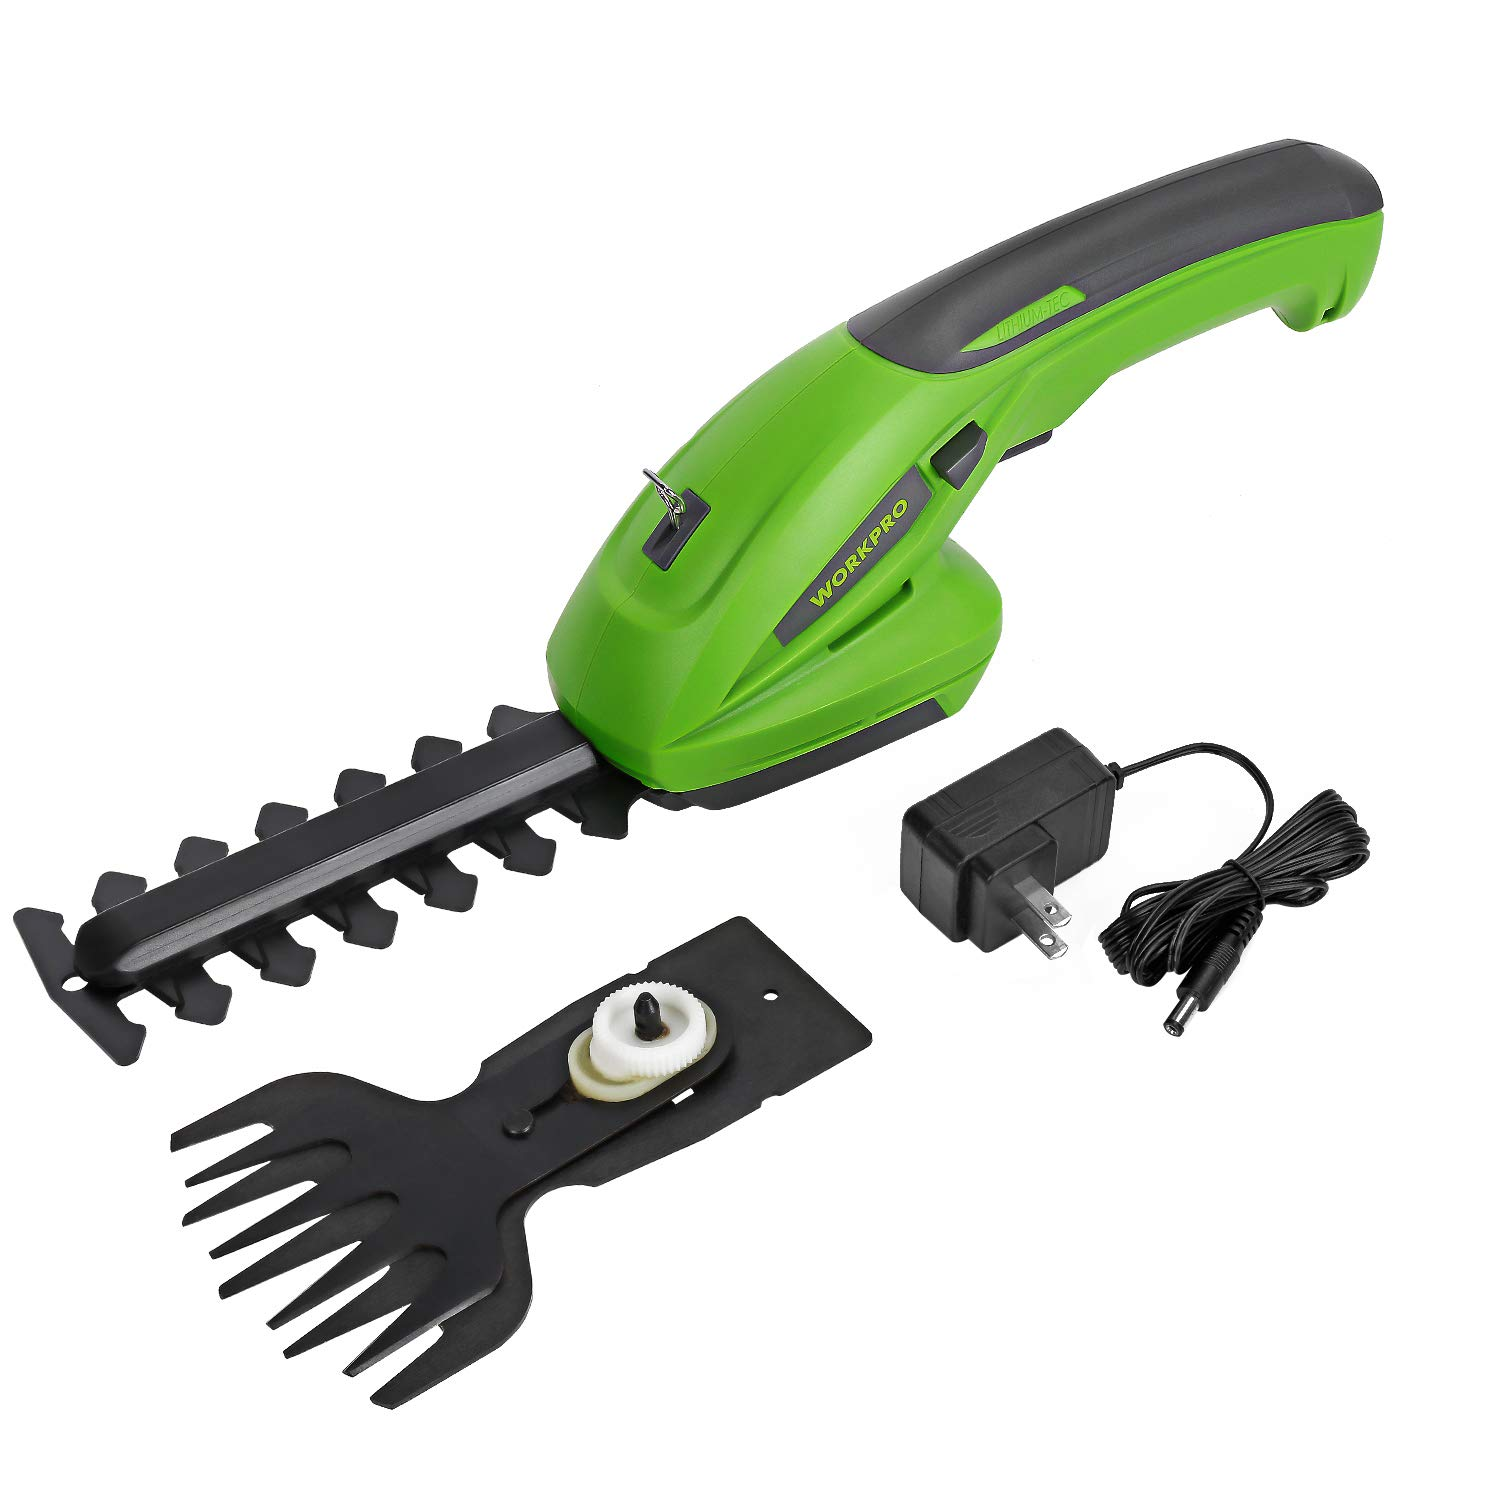 WORKPRO 7.2V 2-in-1 Cordless Grass Shear Shrubber Trimmer – Handheld Hedge Trimmer, Rechargeable Lithium-Ion Battery and Charger Included